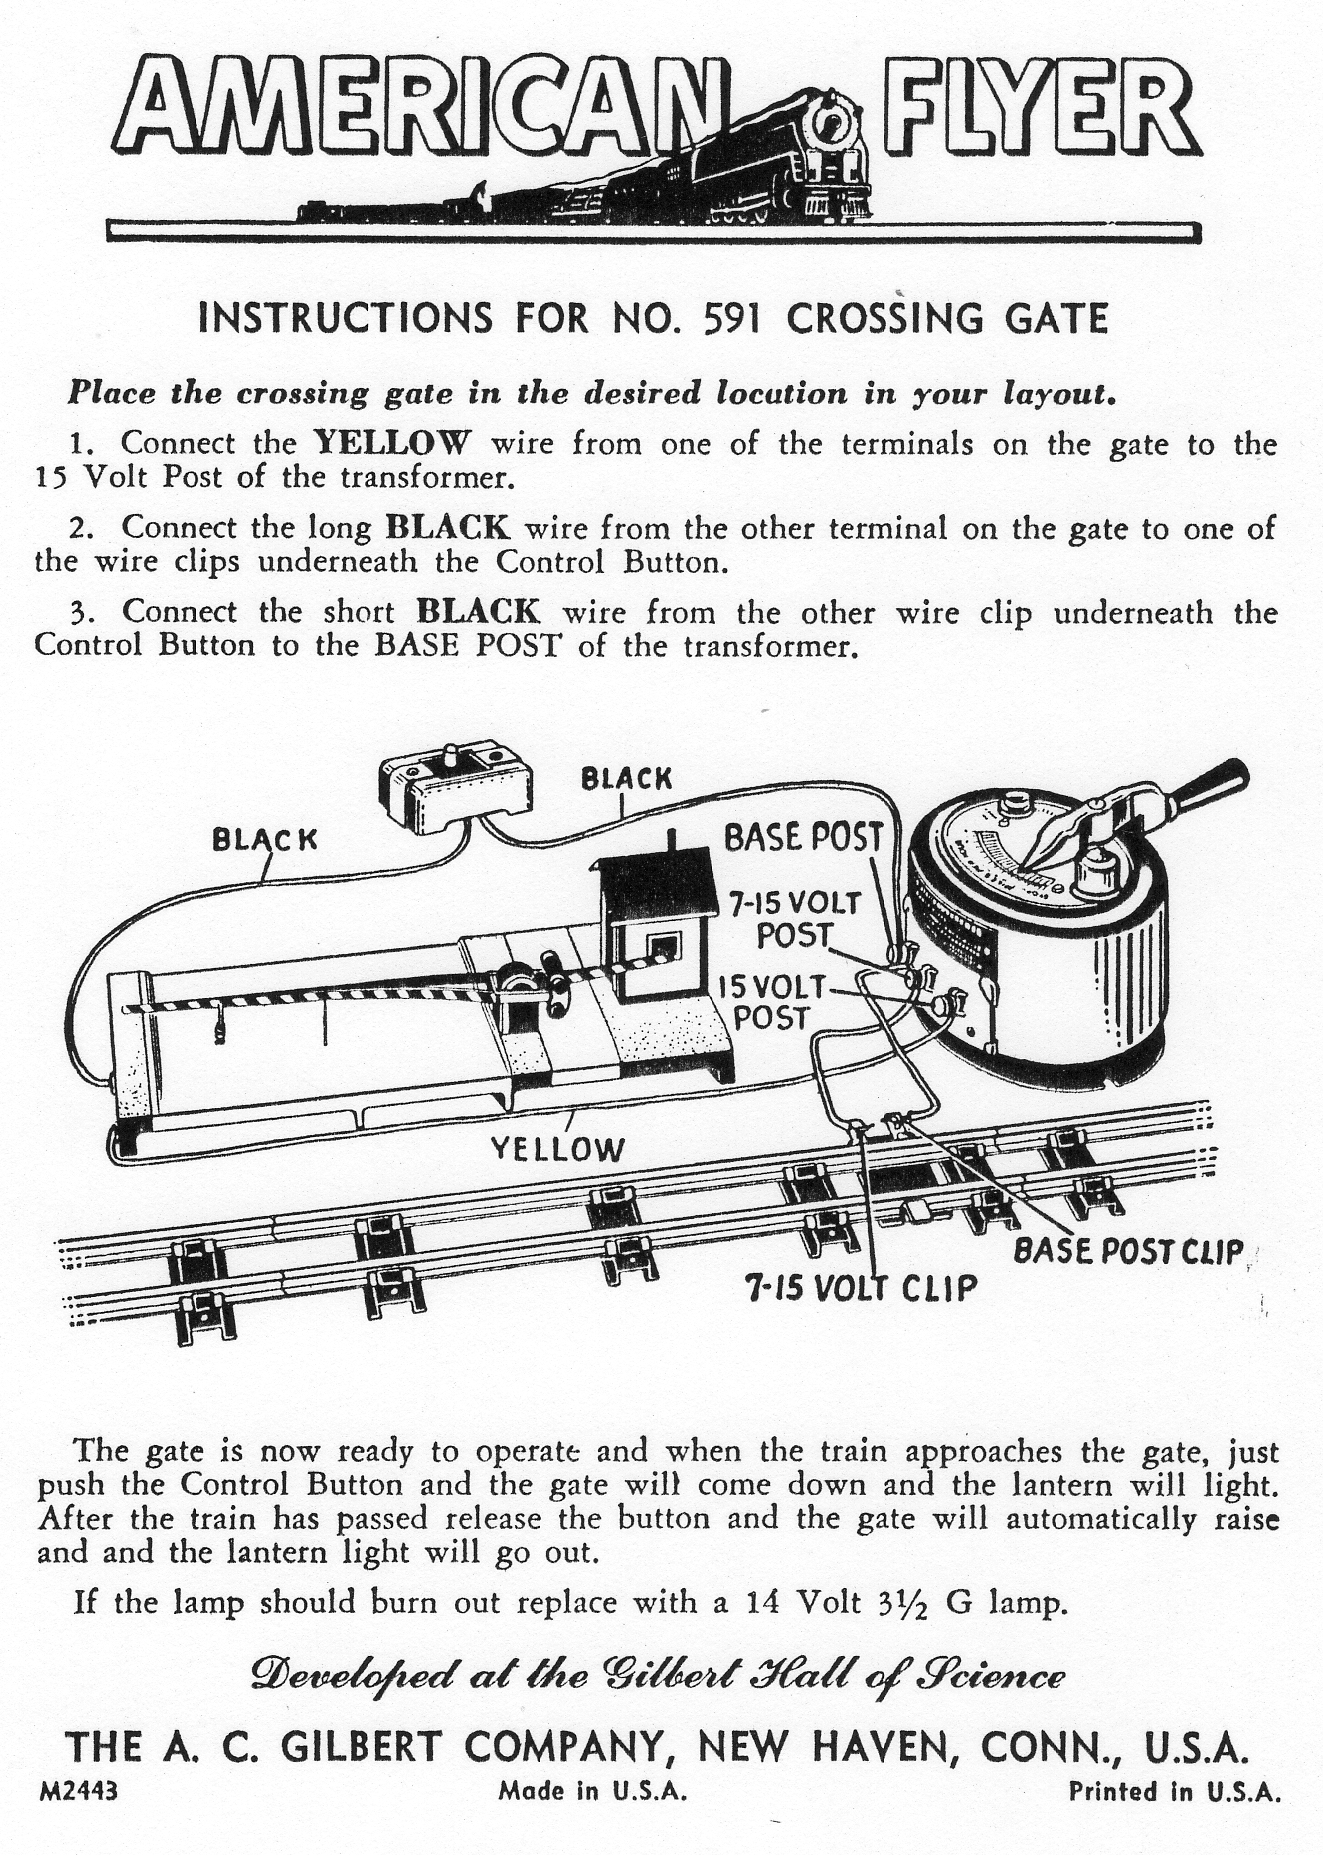 M2443 591 Crossing Gate Instructions Lo Res 001 american flyer wiring instructions traindr american flyer trains 282 wiring diagram at edmiracle.co